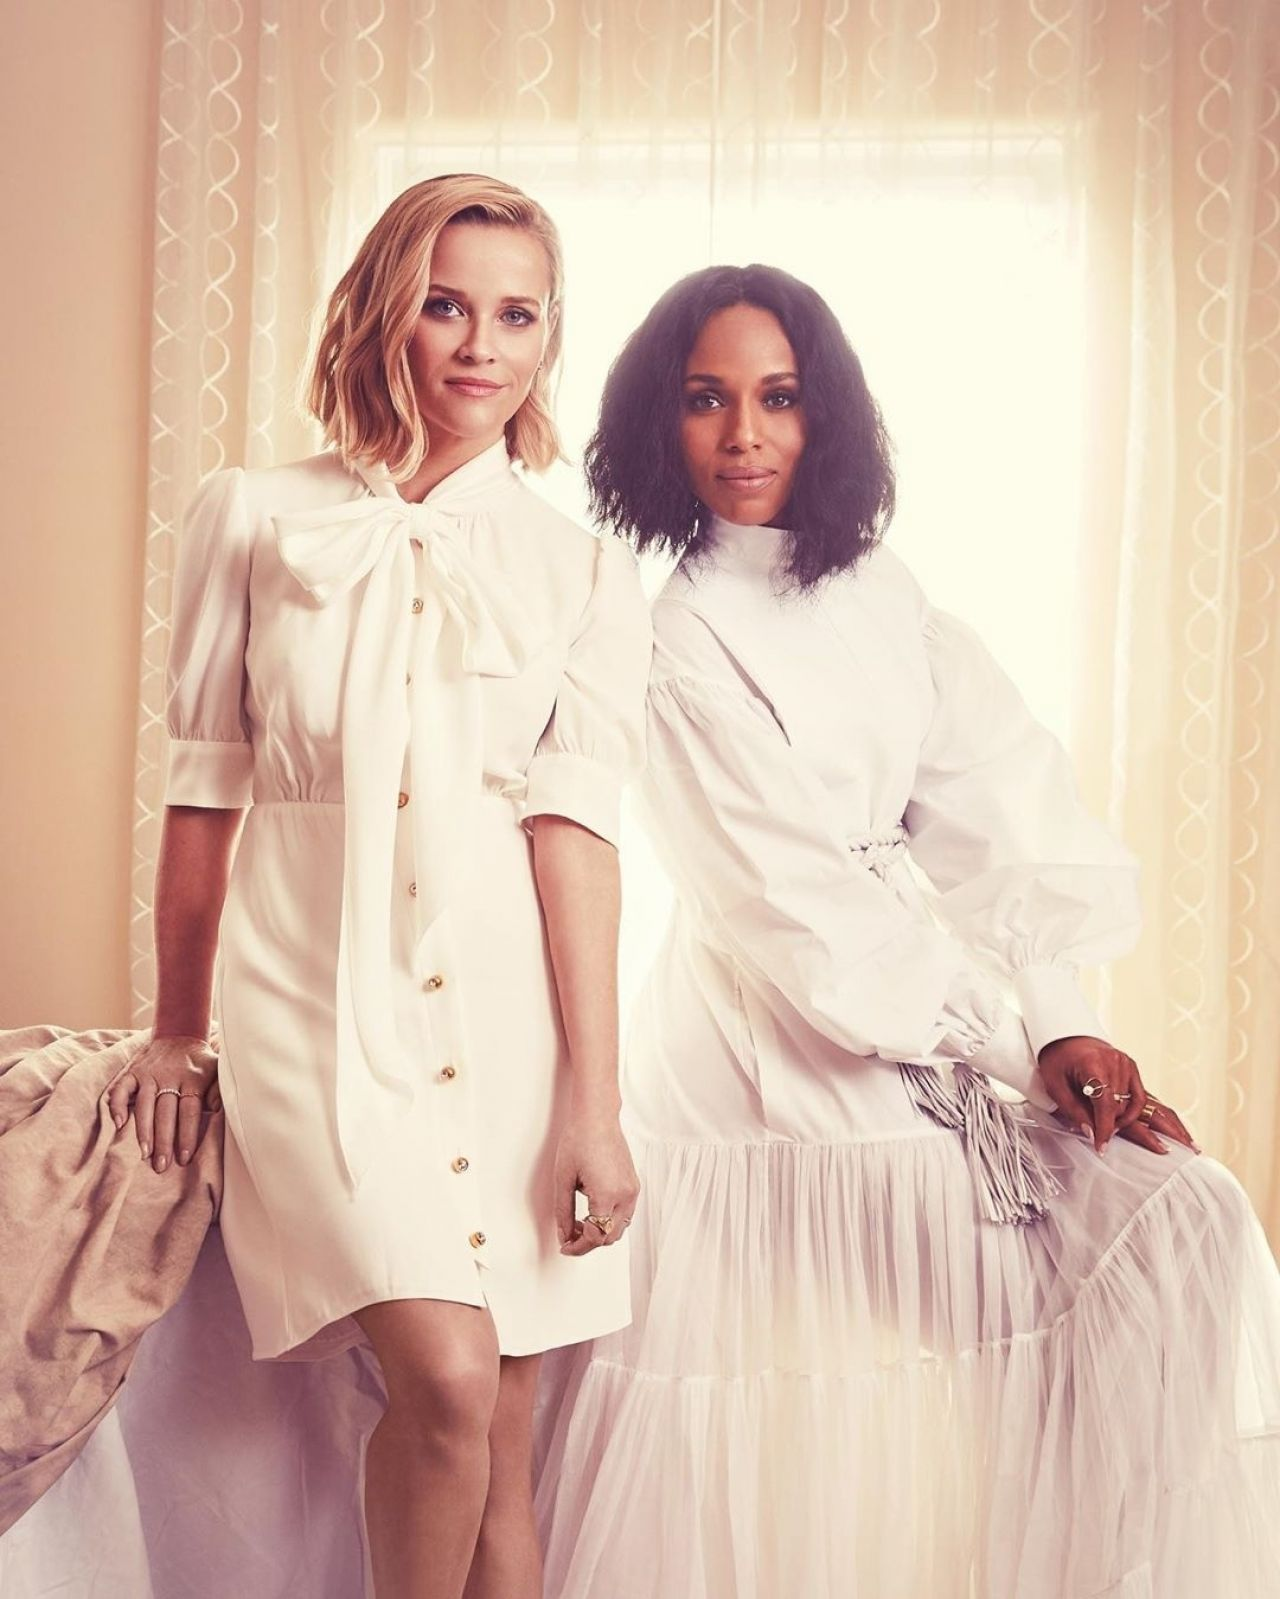 reese-witherspoon-kerry-washington-covers-emmy-magazine-2020-issue-no-2